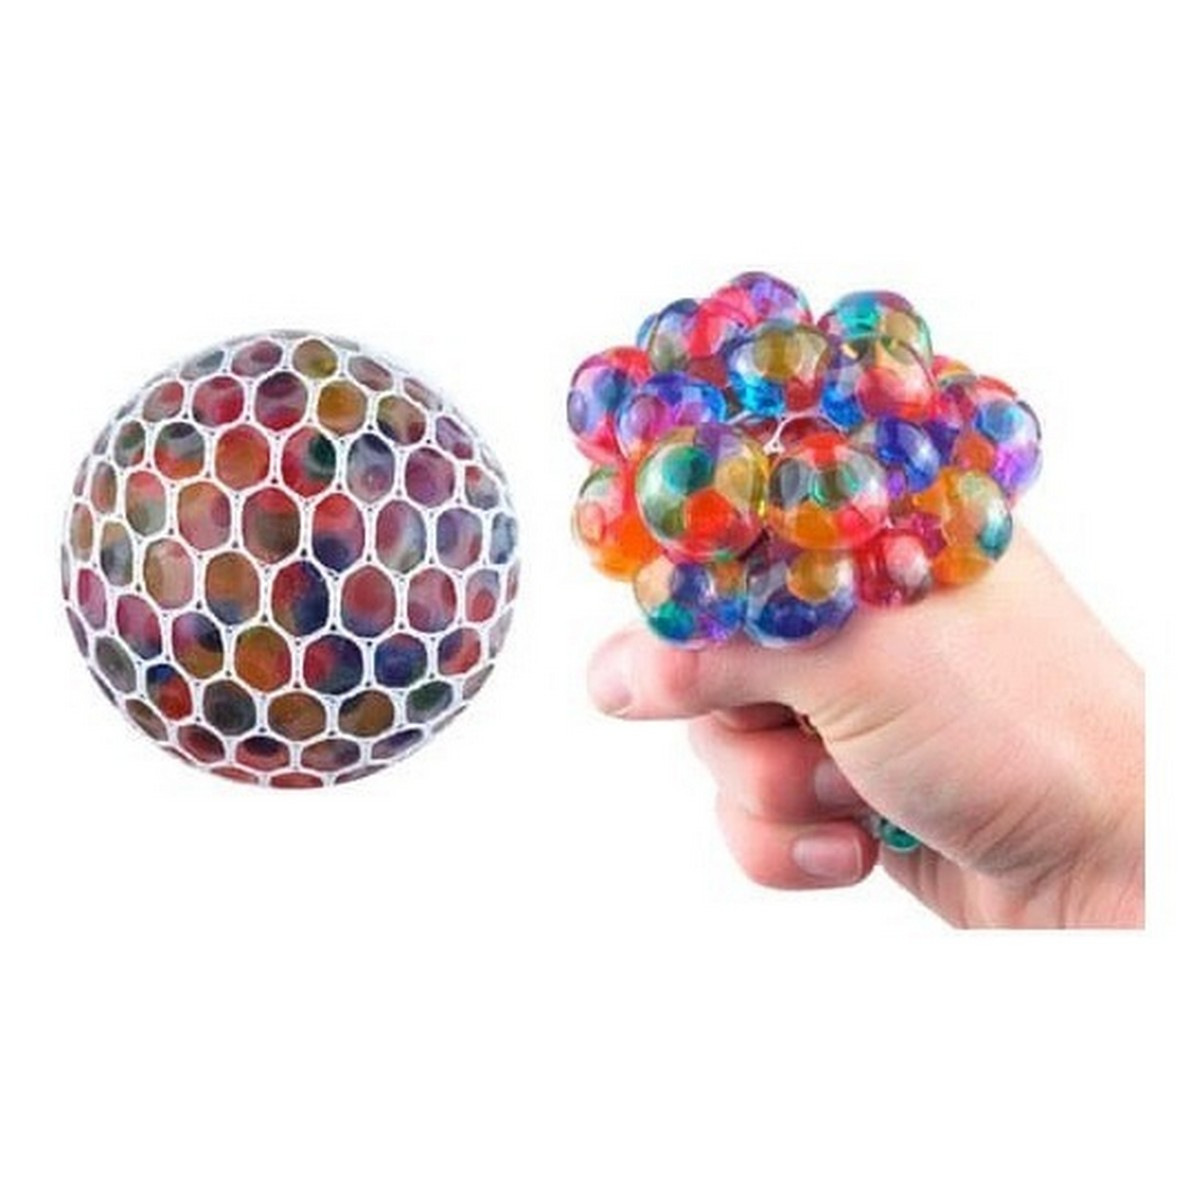 Magic Color Changeable Grape Mesh Squish Ball Stress Release Toy Squeezing Rubber Vent Grape Ball Hand Wrist Toy Multicolor FREE SHIPPING